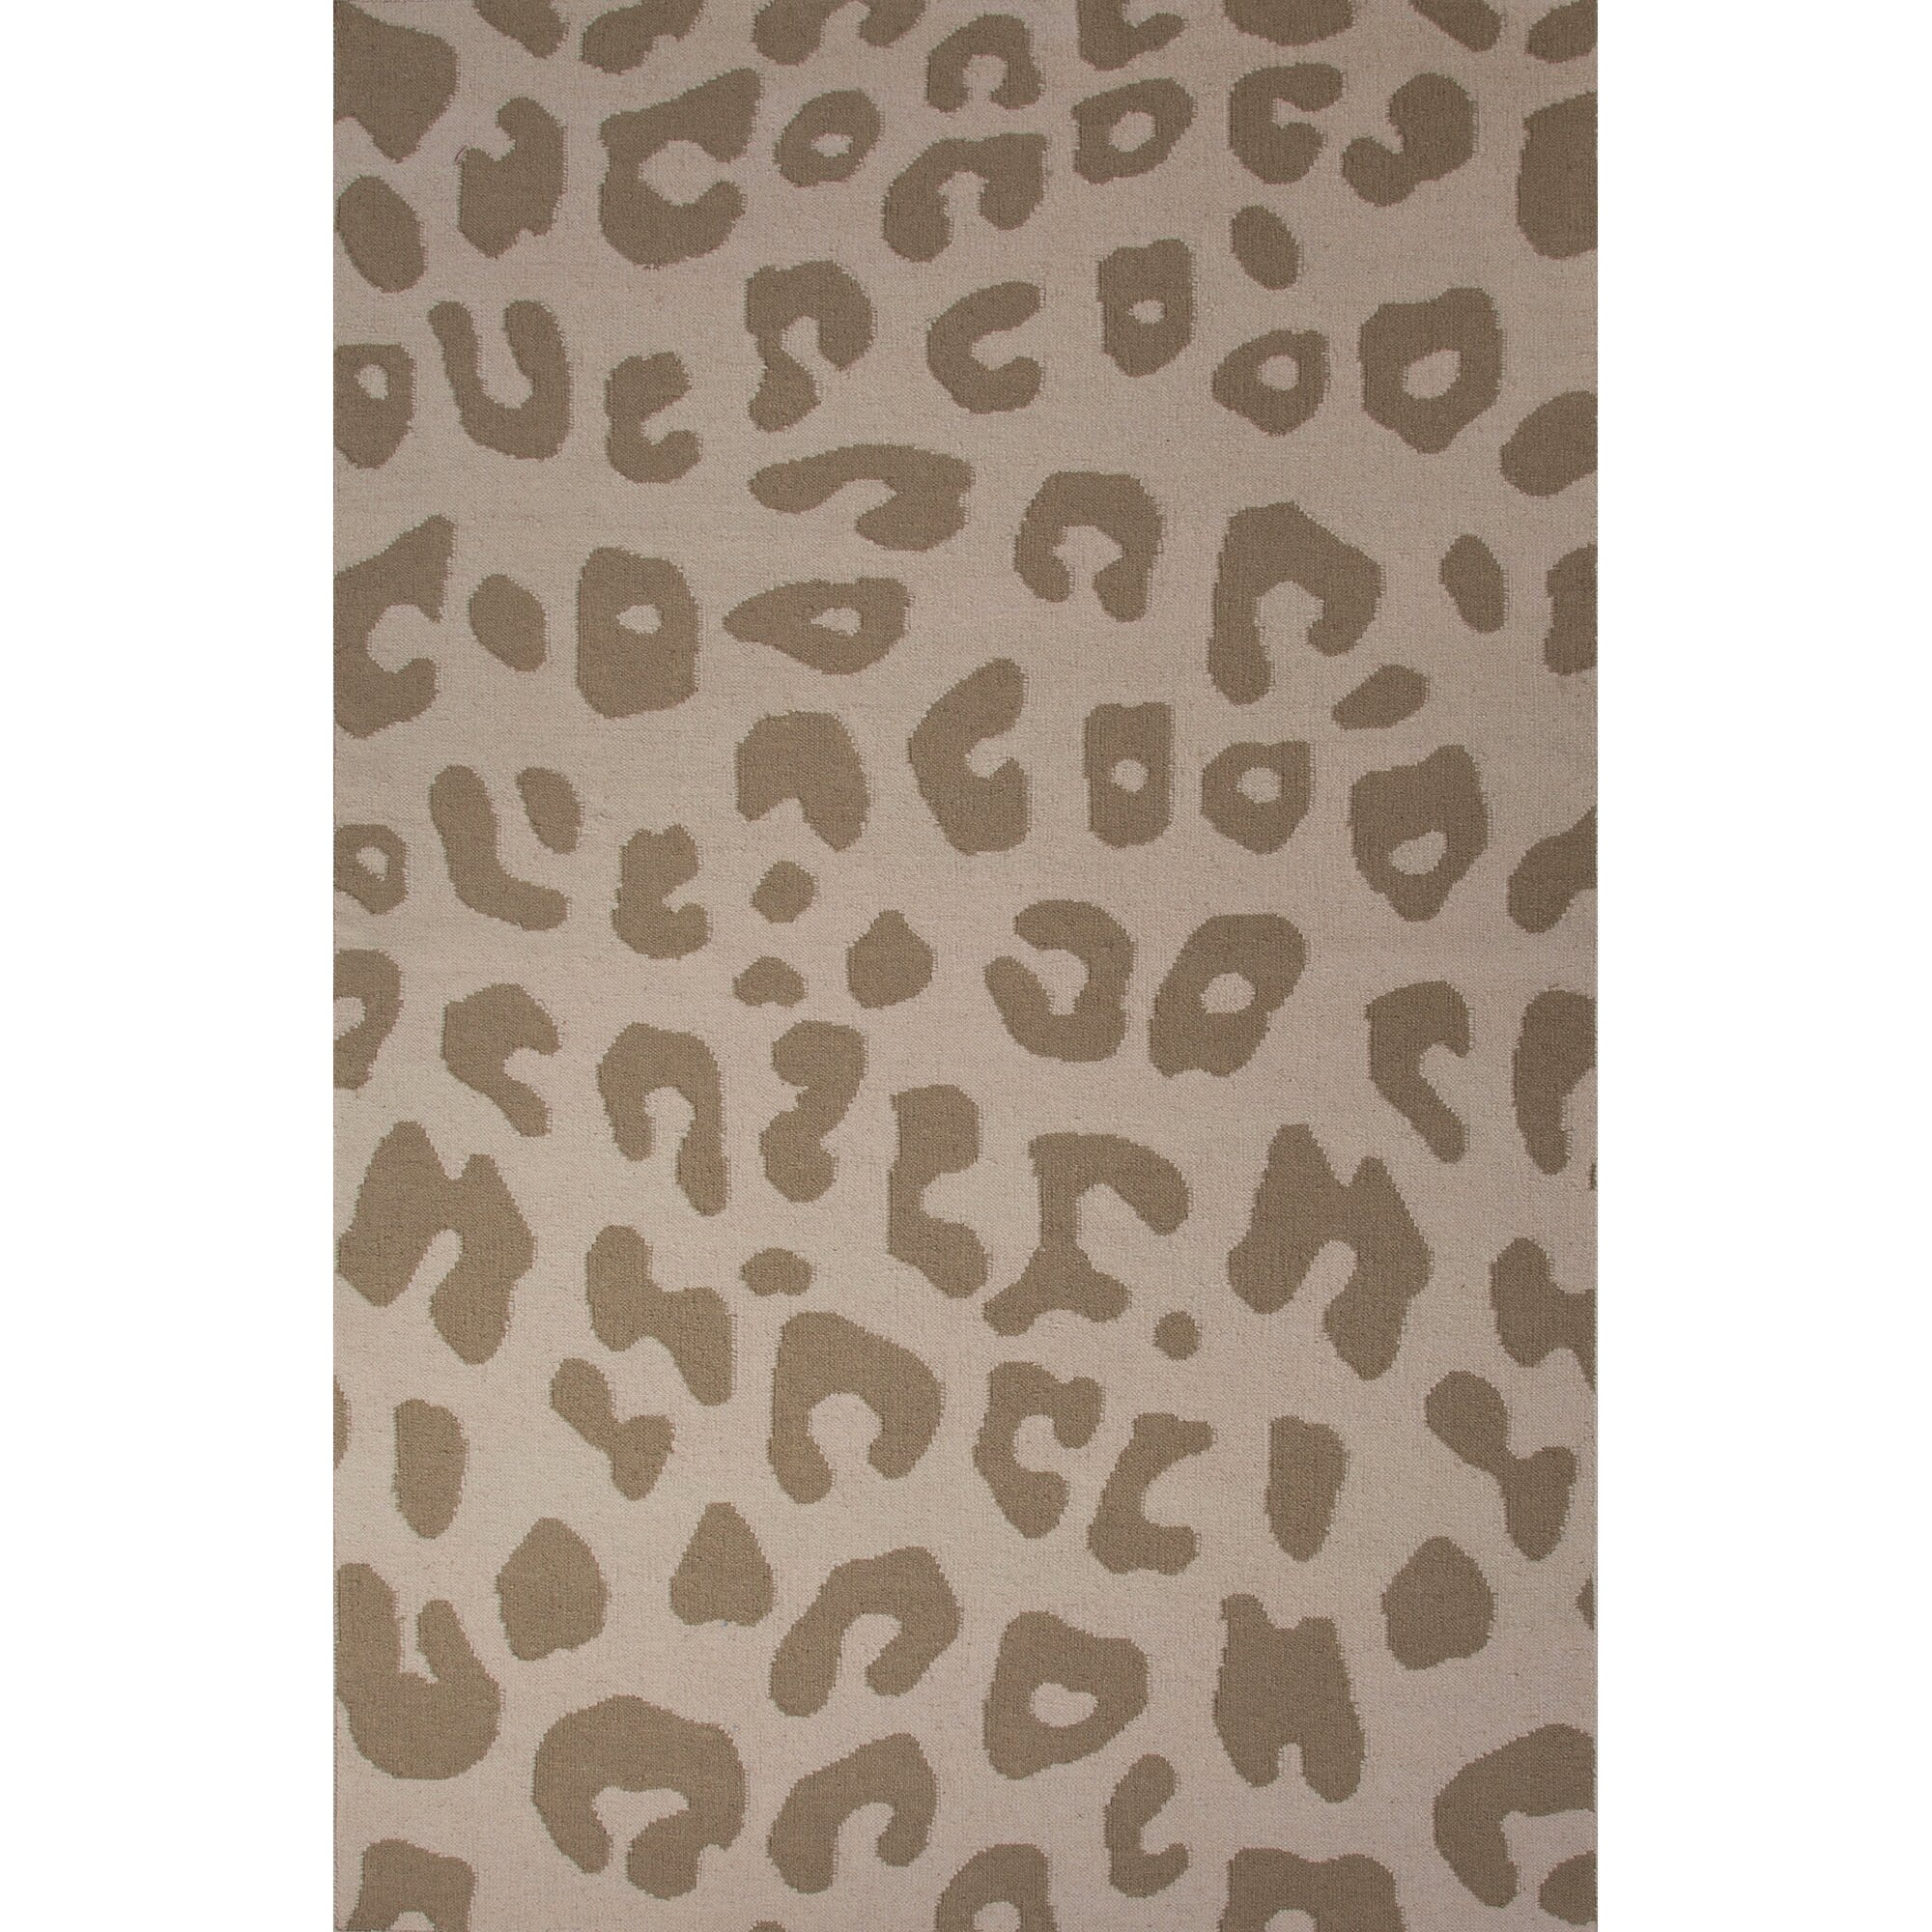 National Geographic Home Collection Wool Tan Leopard Flat Weave Area Rug Reviews Wayfair